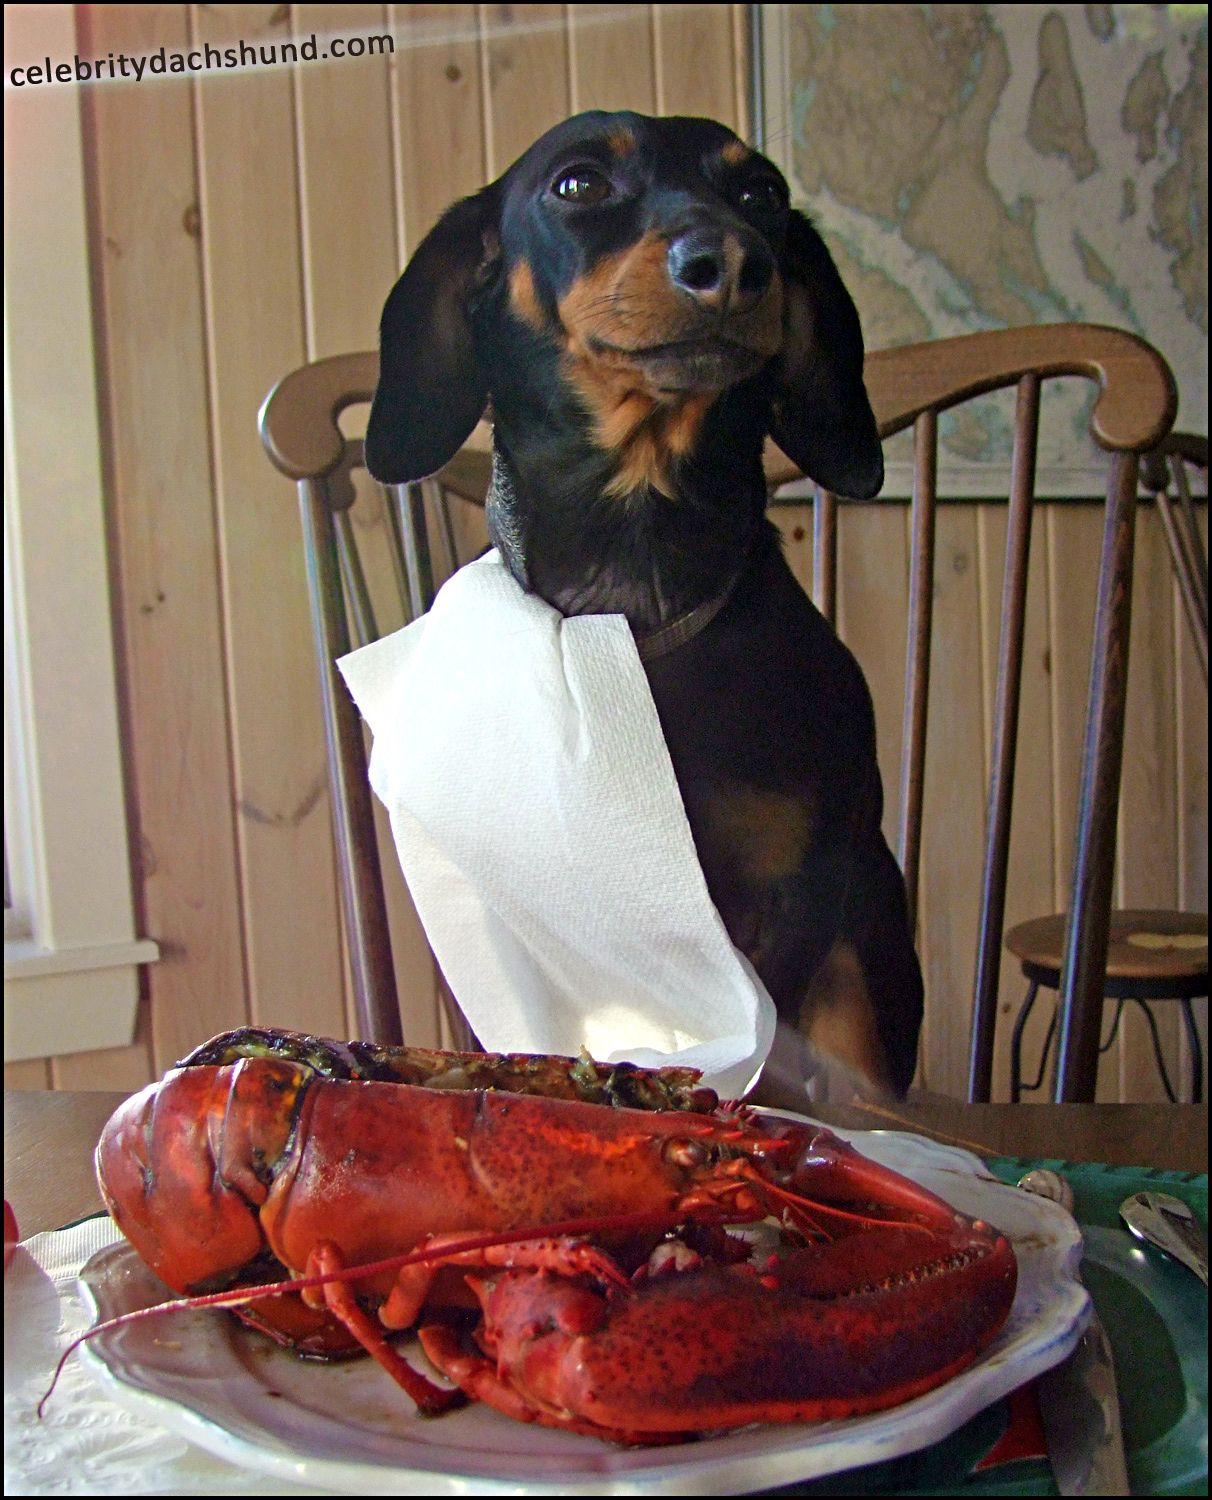 Now This Is A Dinner X Wiener Dog Dog Vacations Dachshund